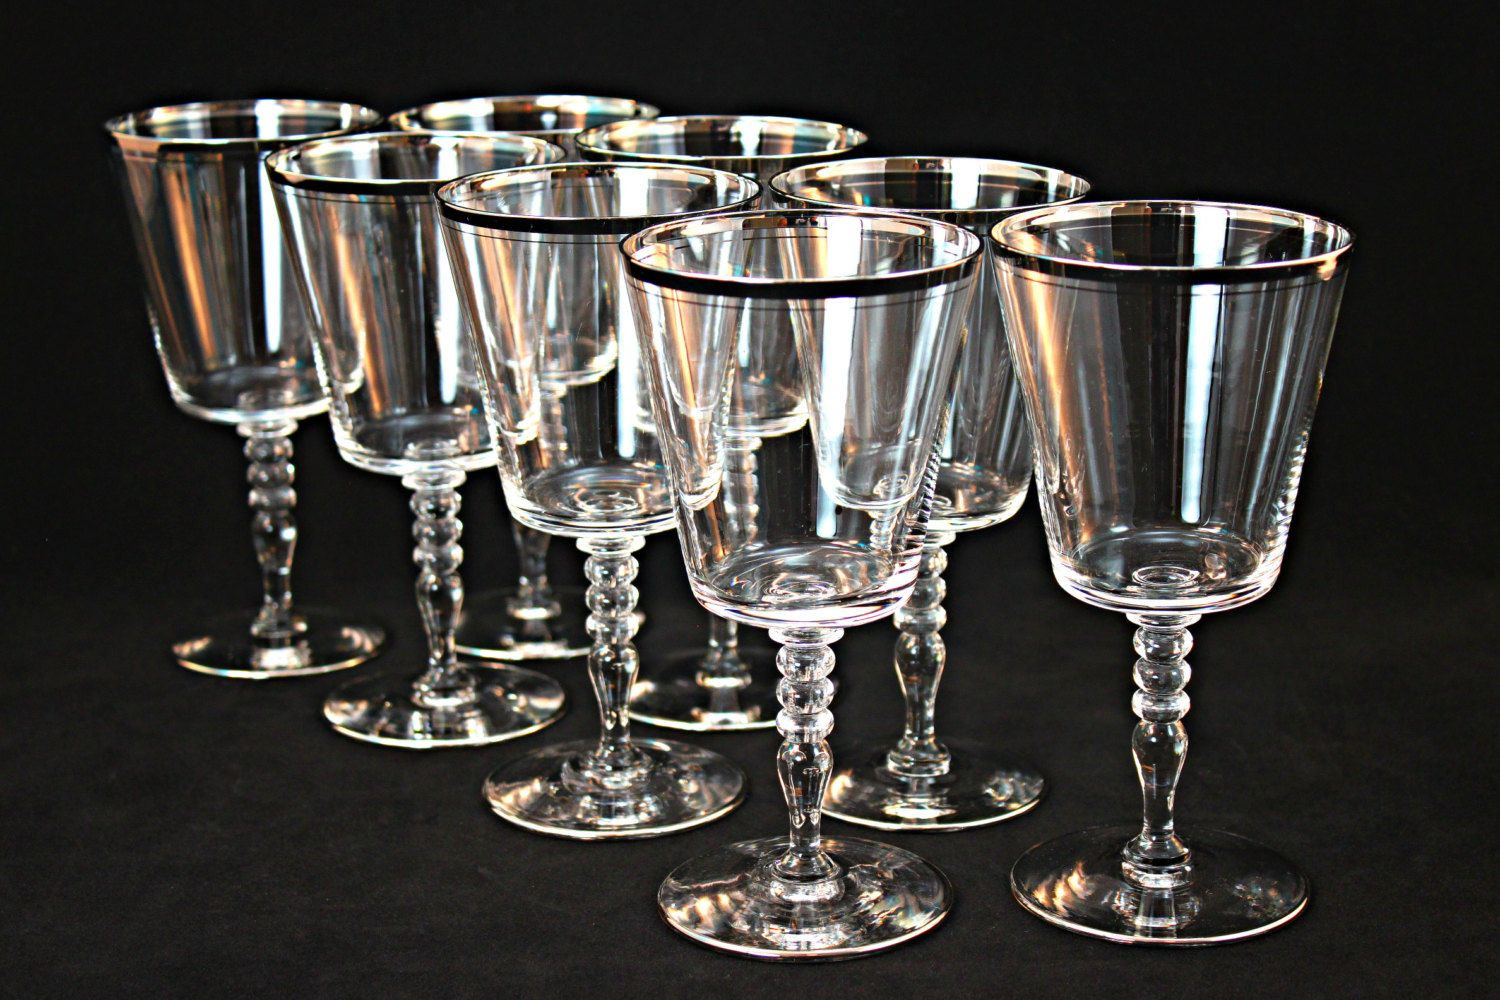 lenox crystal vase value of 1000 best beautiful vintage glass images on pinterest bowls clear with 1000 best beautiful vintage glass images on pinterest bowls clear plates and corner